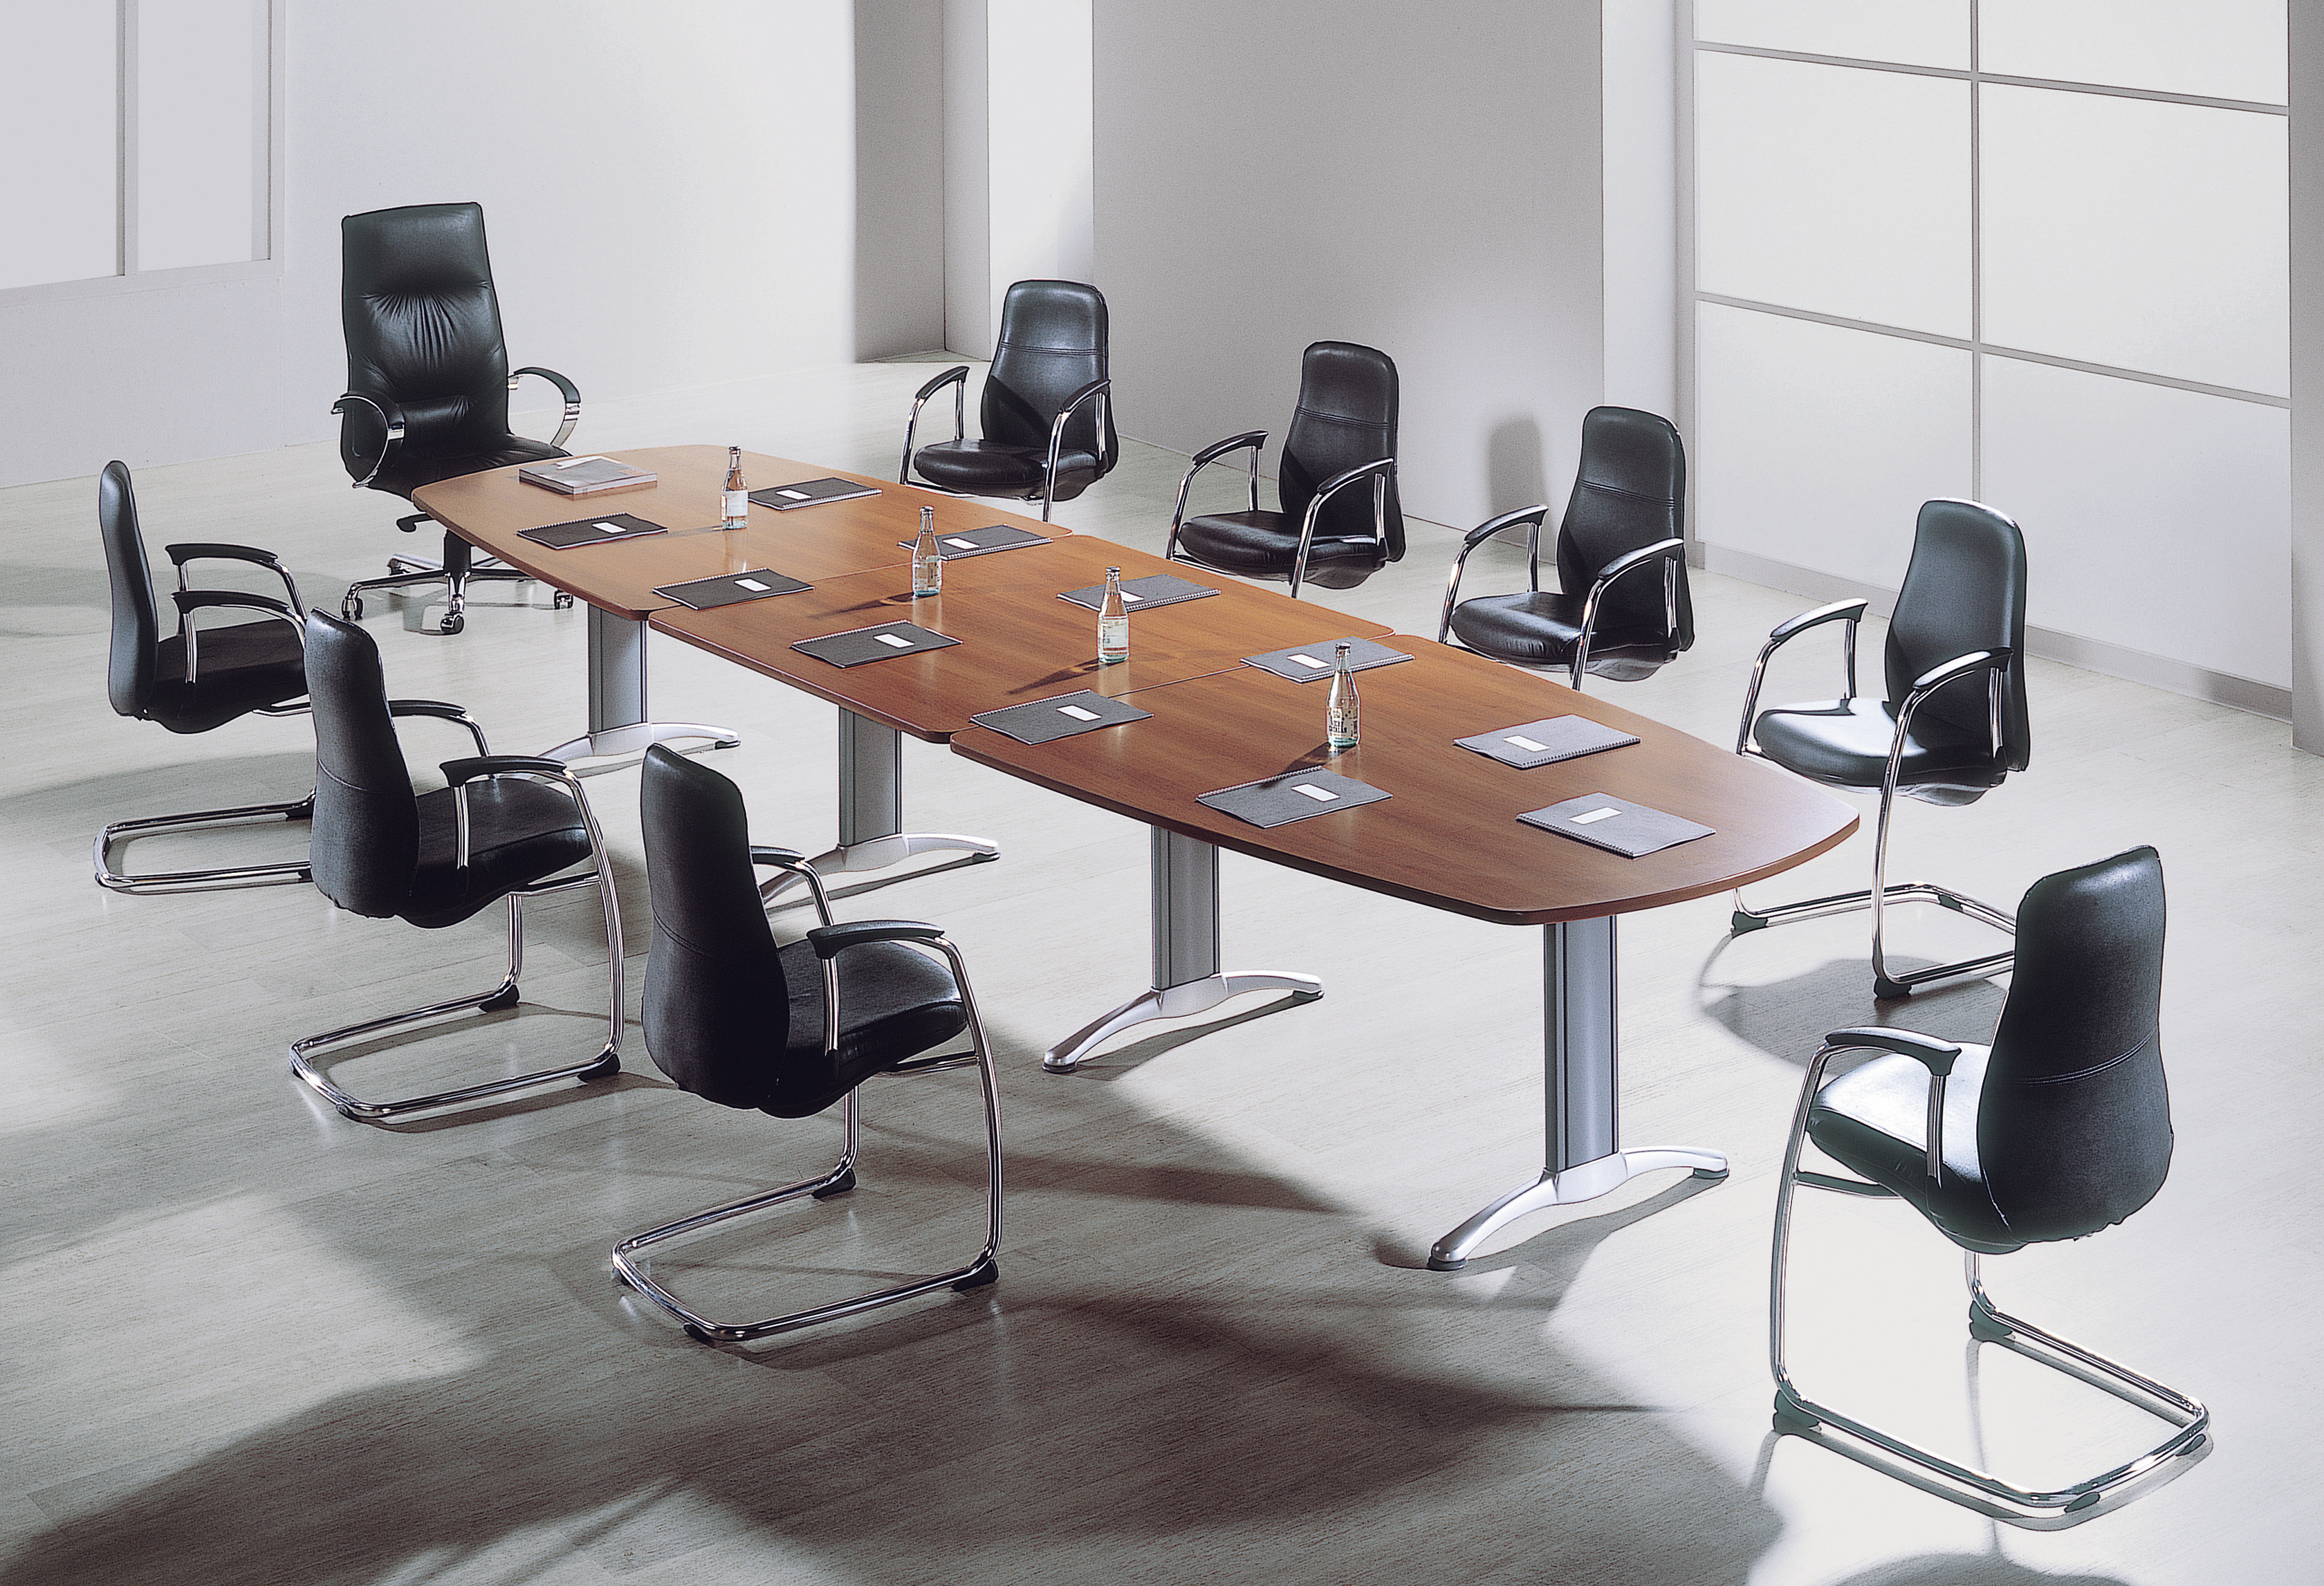 Executive Boardroom Table 3 2m Seats 10 Next Day Delivery Next Day Furniture General Boardroom Tables Clearance And Offers Waterfront Warehouse